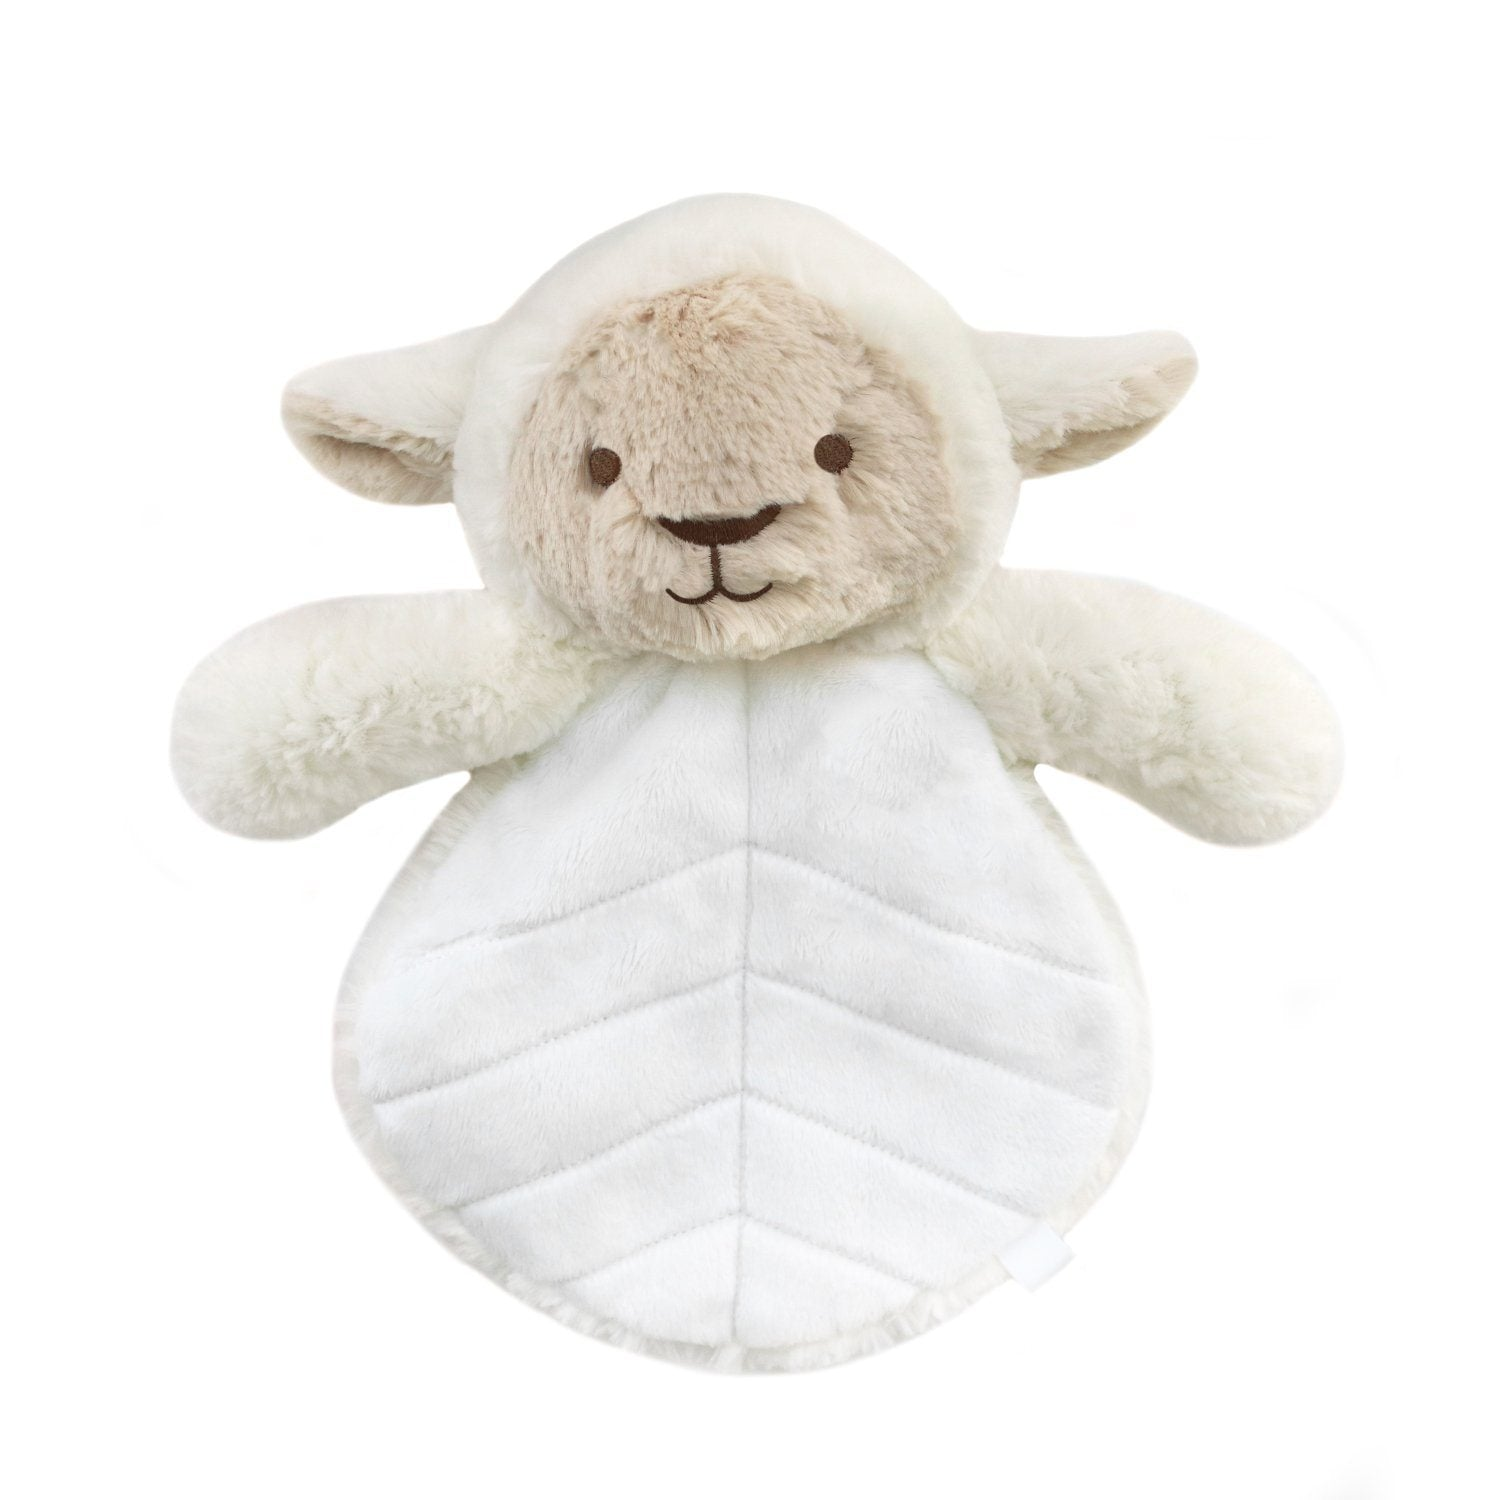 more on Baby Comforter | Baby Toys | Lee Lamb